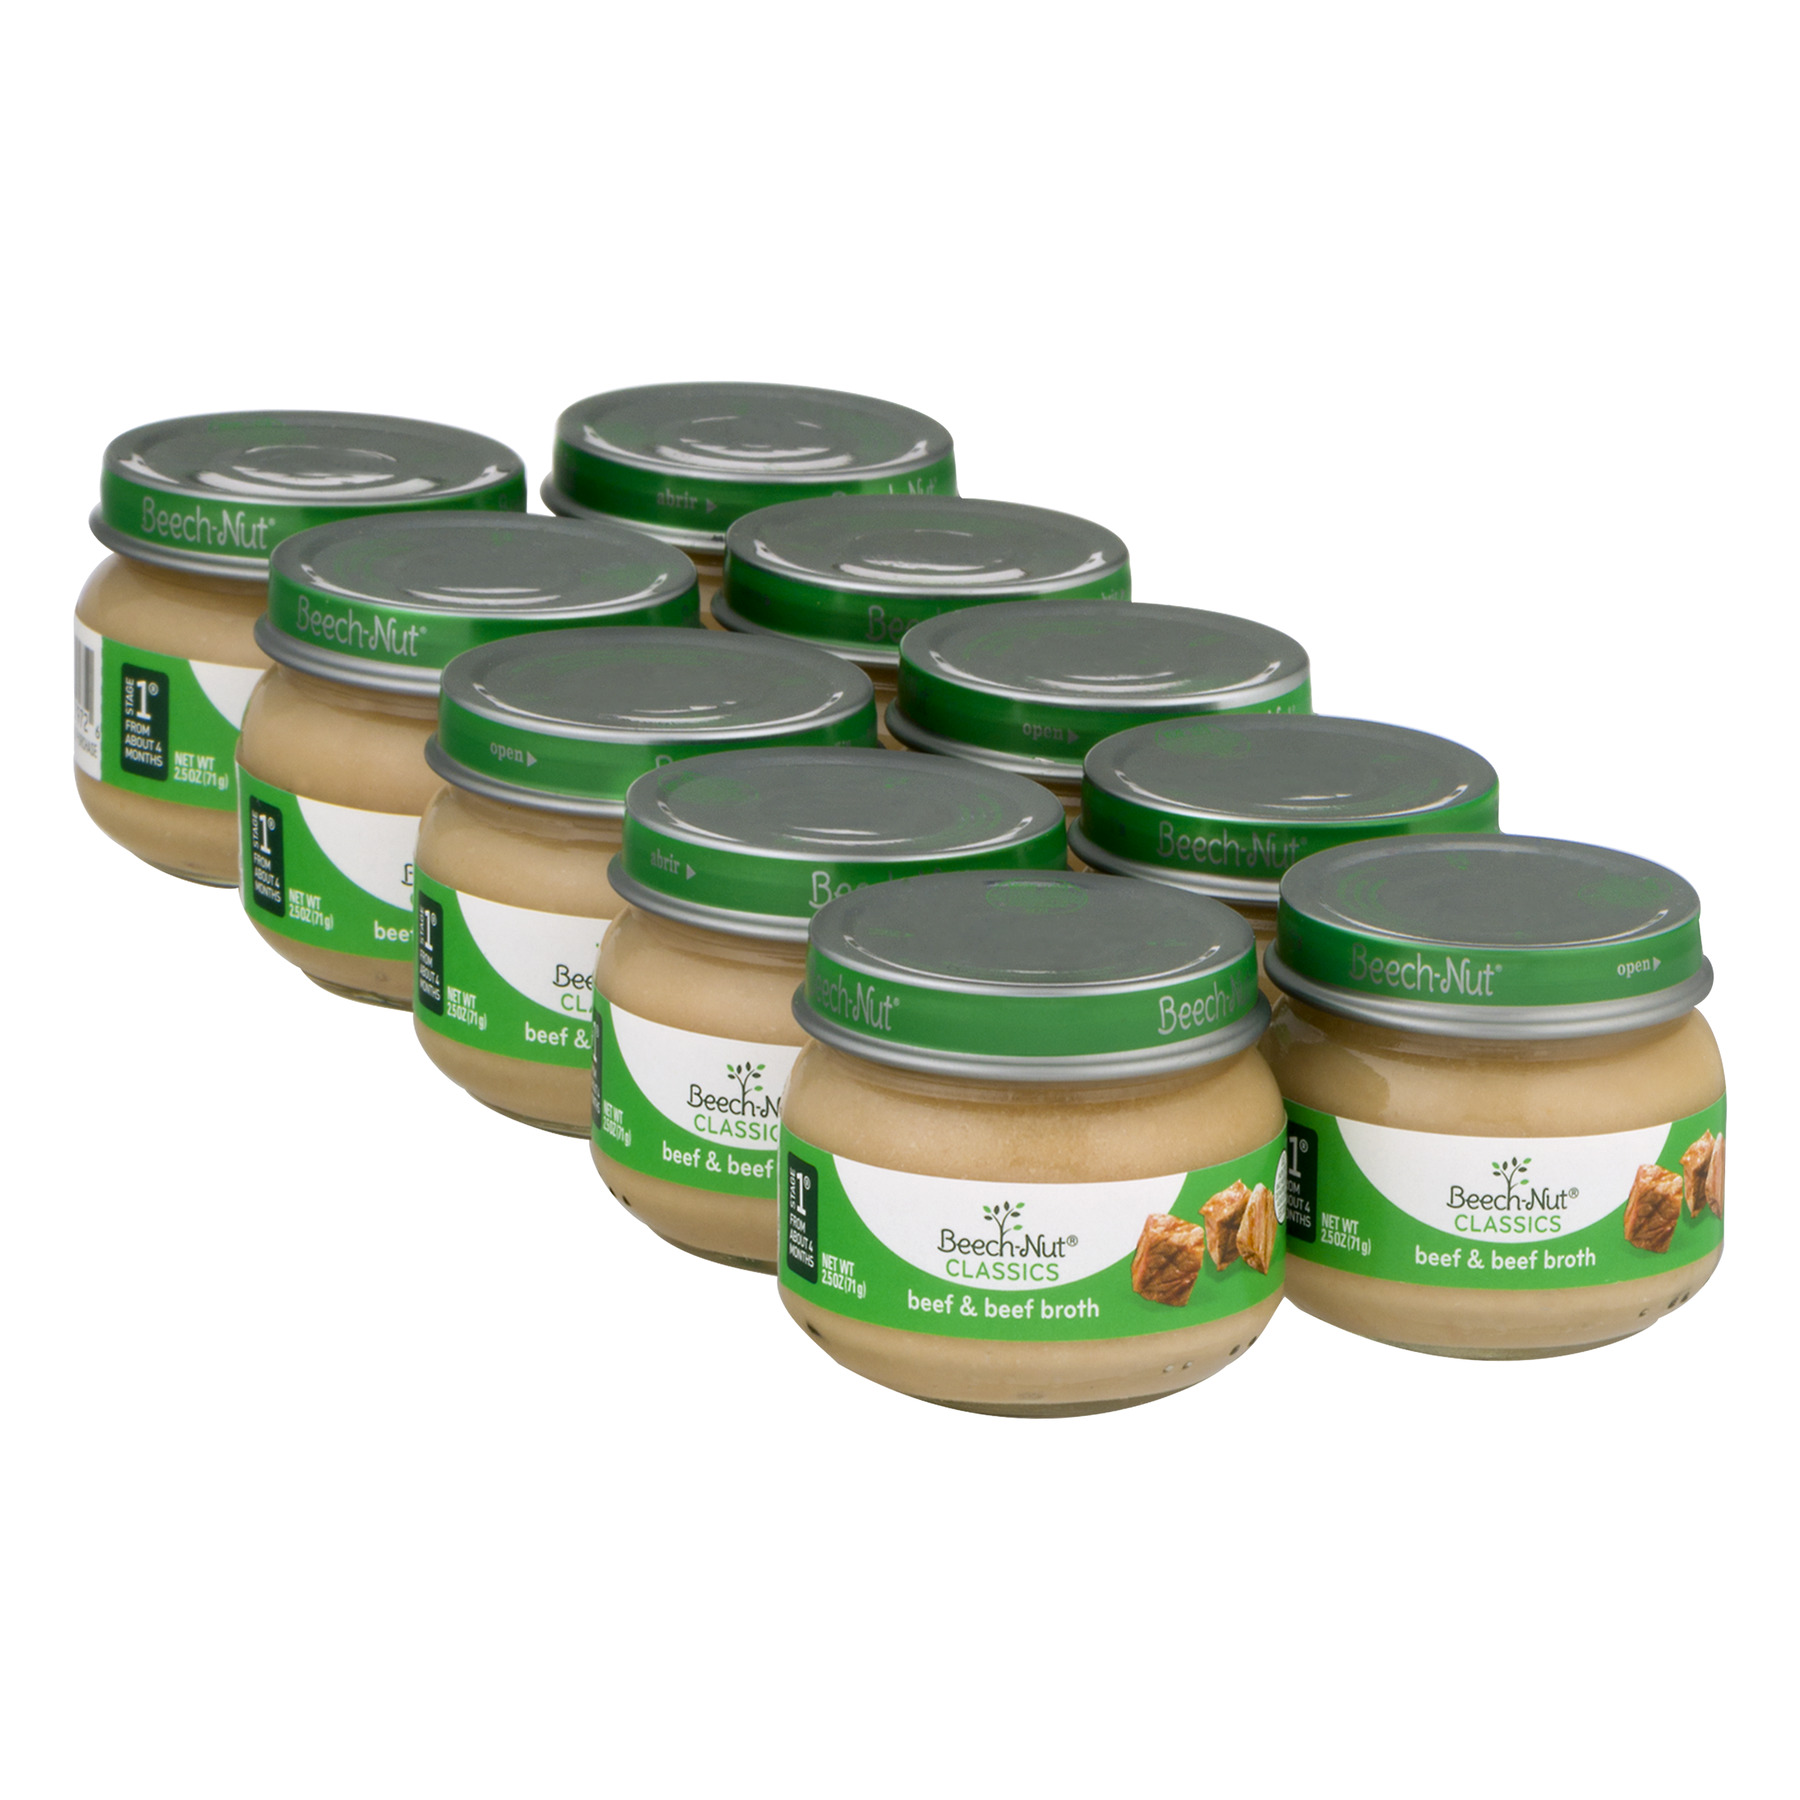 10 Jars Beech Nut Baby Food Jar Stage 1 Beef Amp Beef